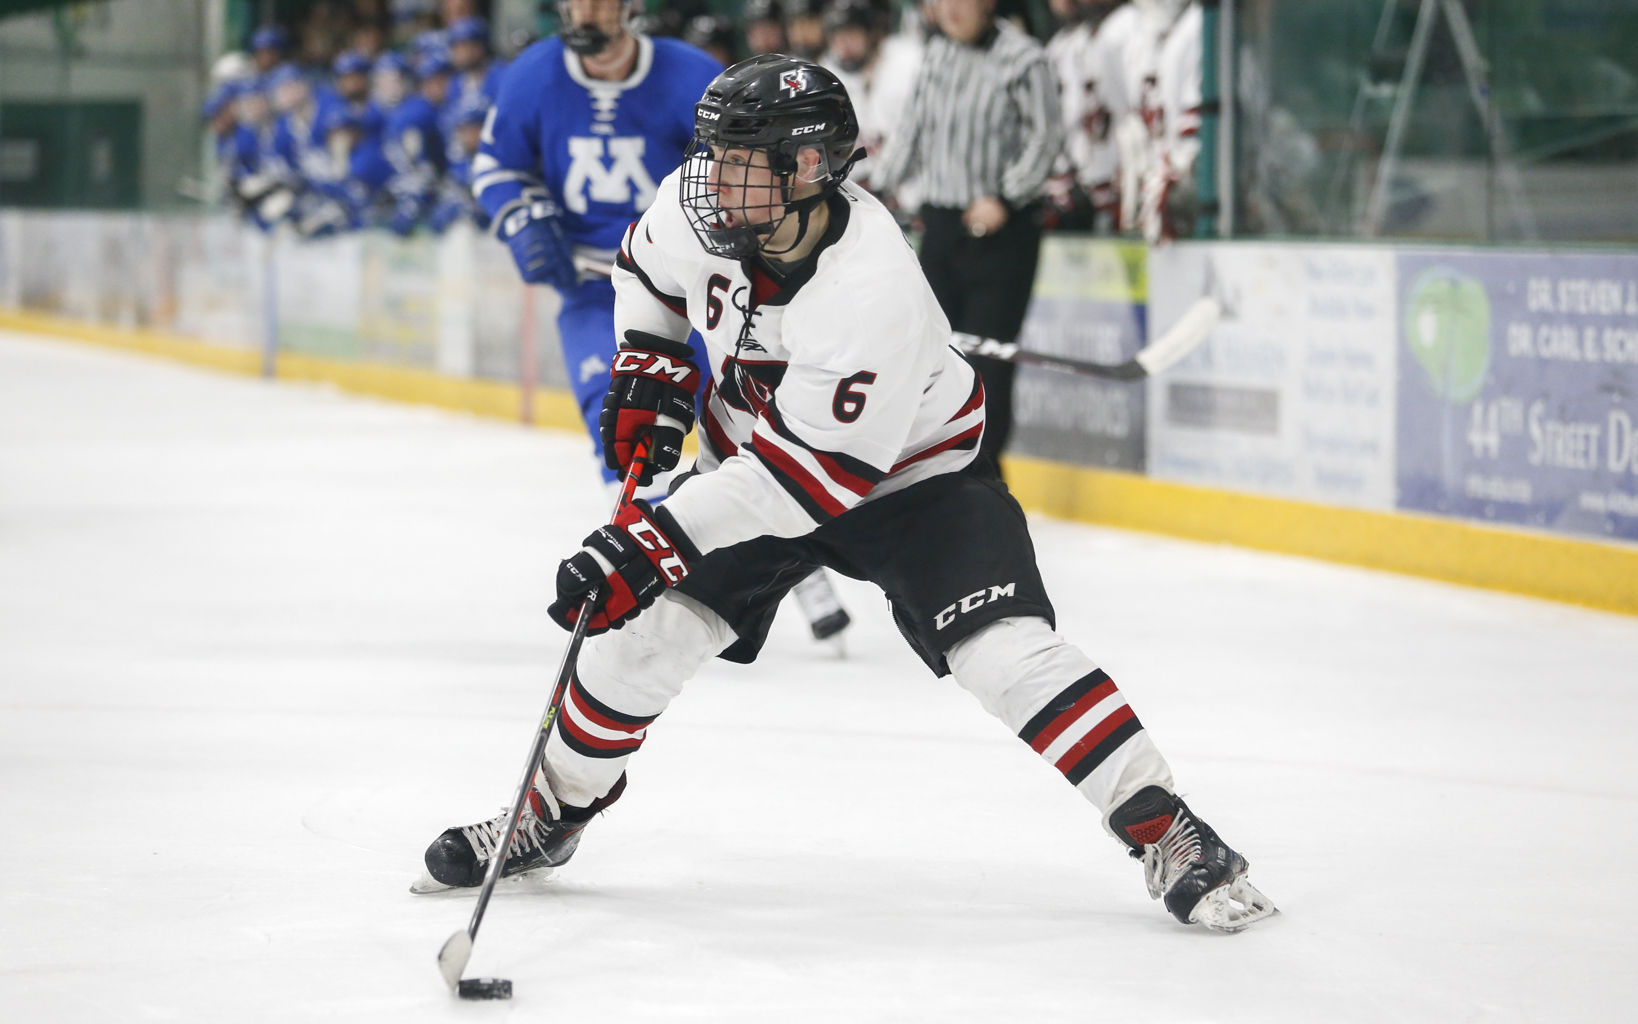 Eden Prairie's Ben Steeves (6) looks for a passing lane against Minnetonka Saturday afternoon. Steeves had two goals and an assist in the Eagles 6-1 victory over the Skippers at Braemar Arena. Photo by Jeff Lawler, SportsEngine